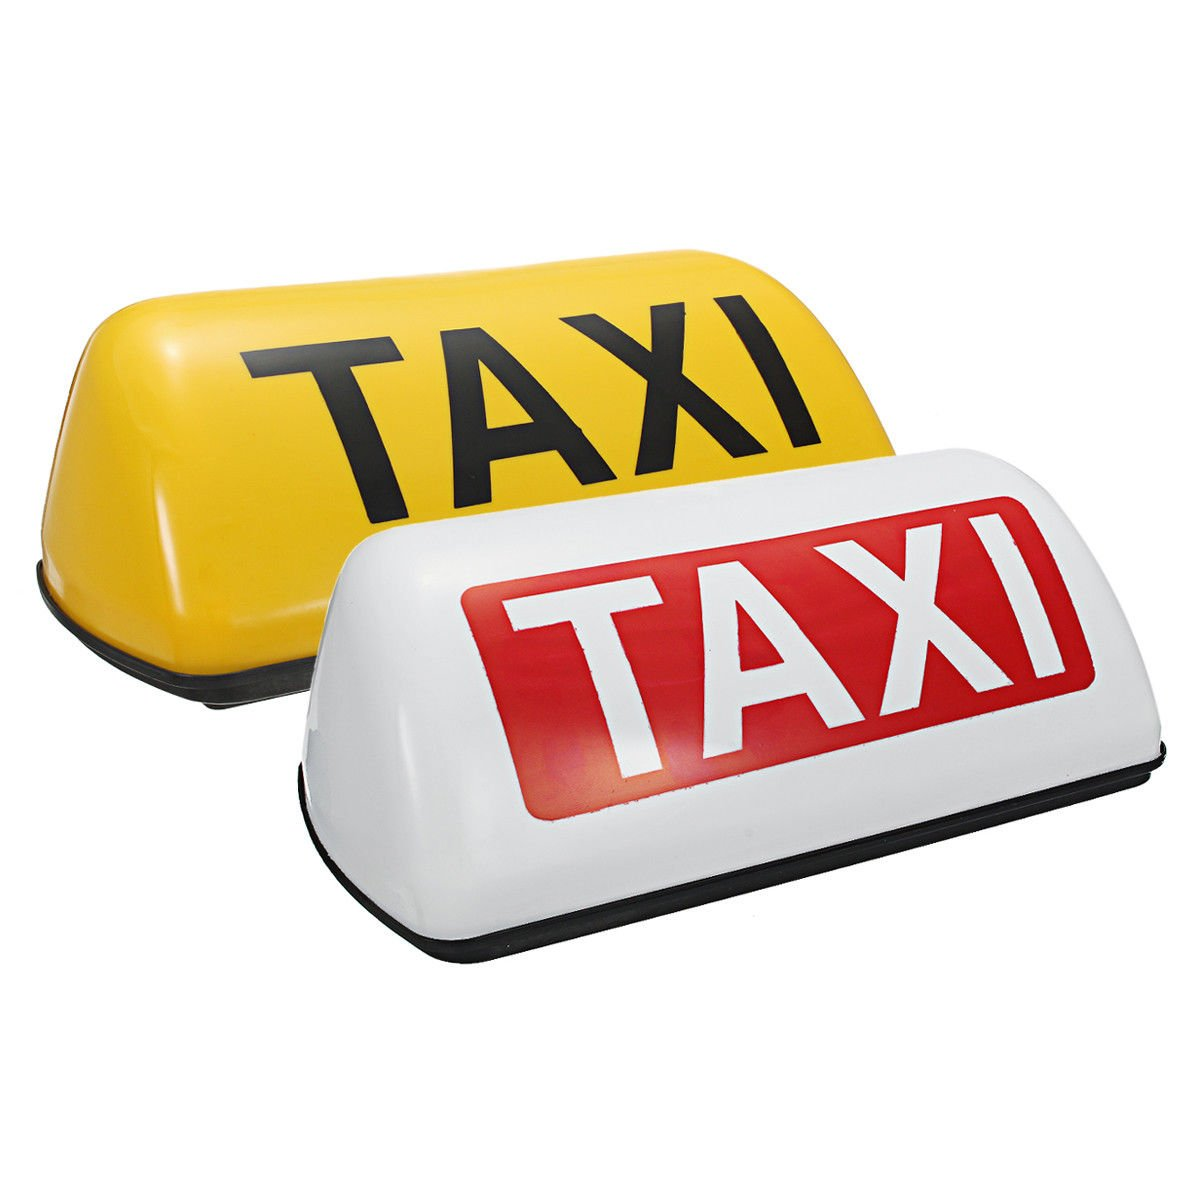 Waterproof Taxi Roof Top Sign Light Magnetic Taximeter Cab Halogen Lamp 12V